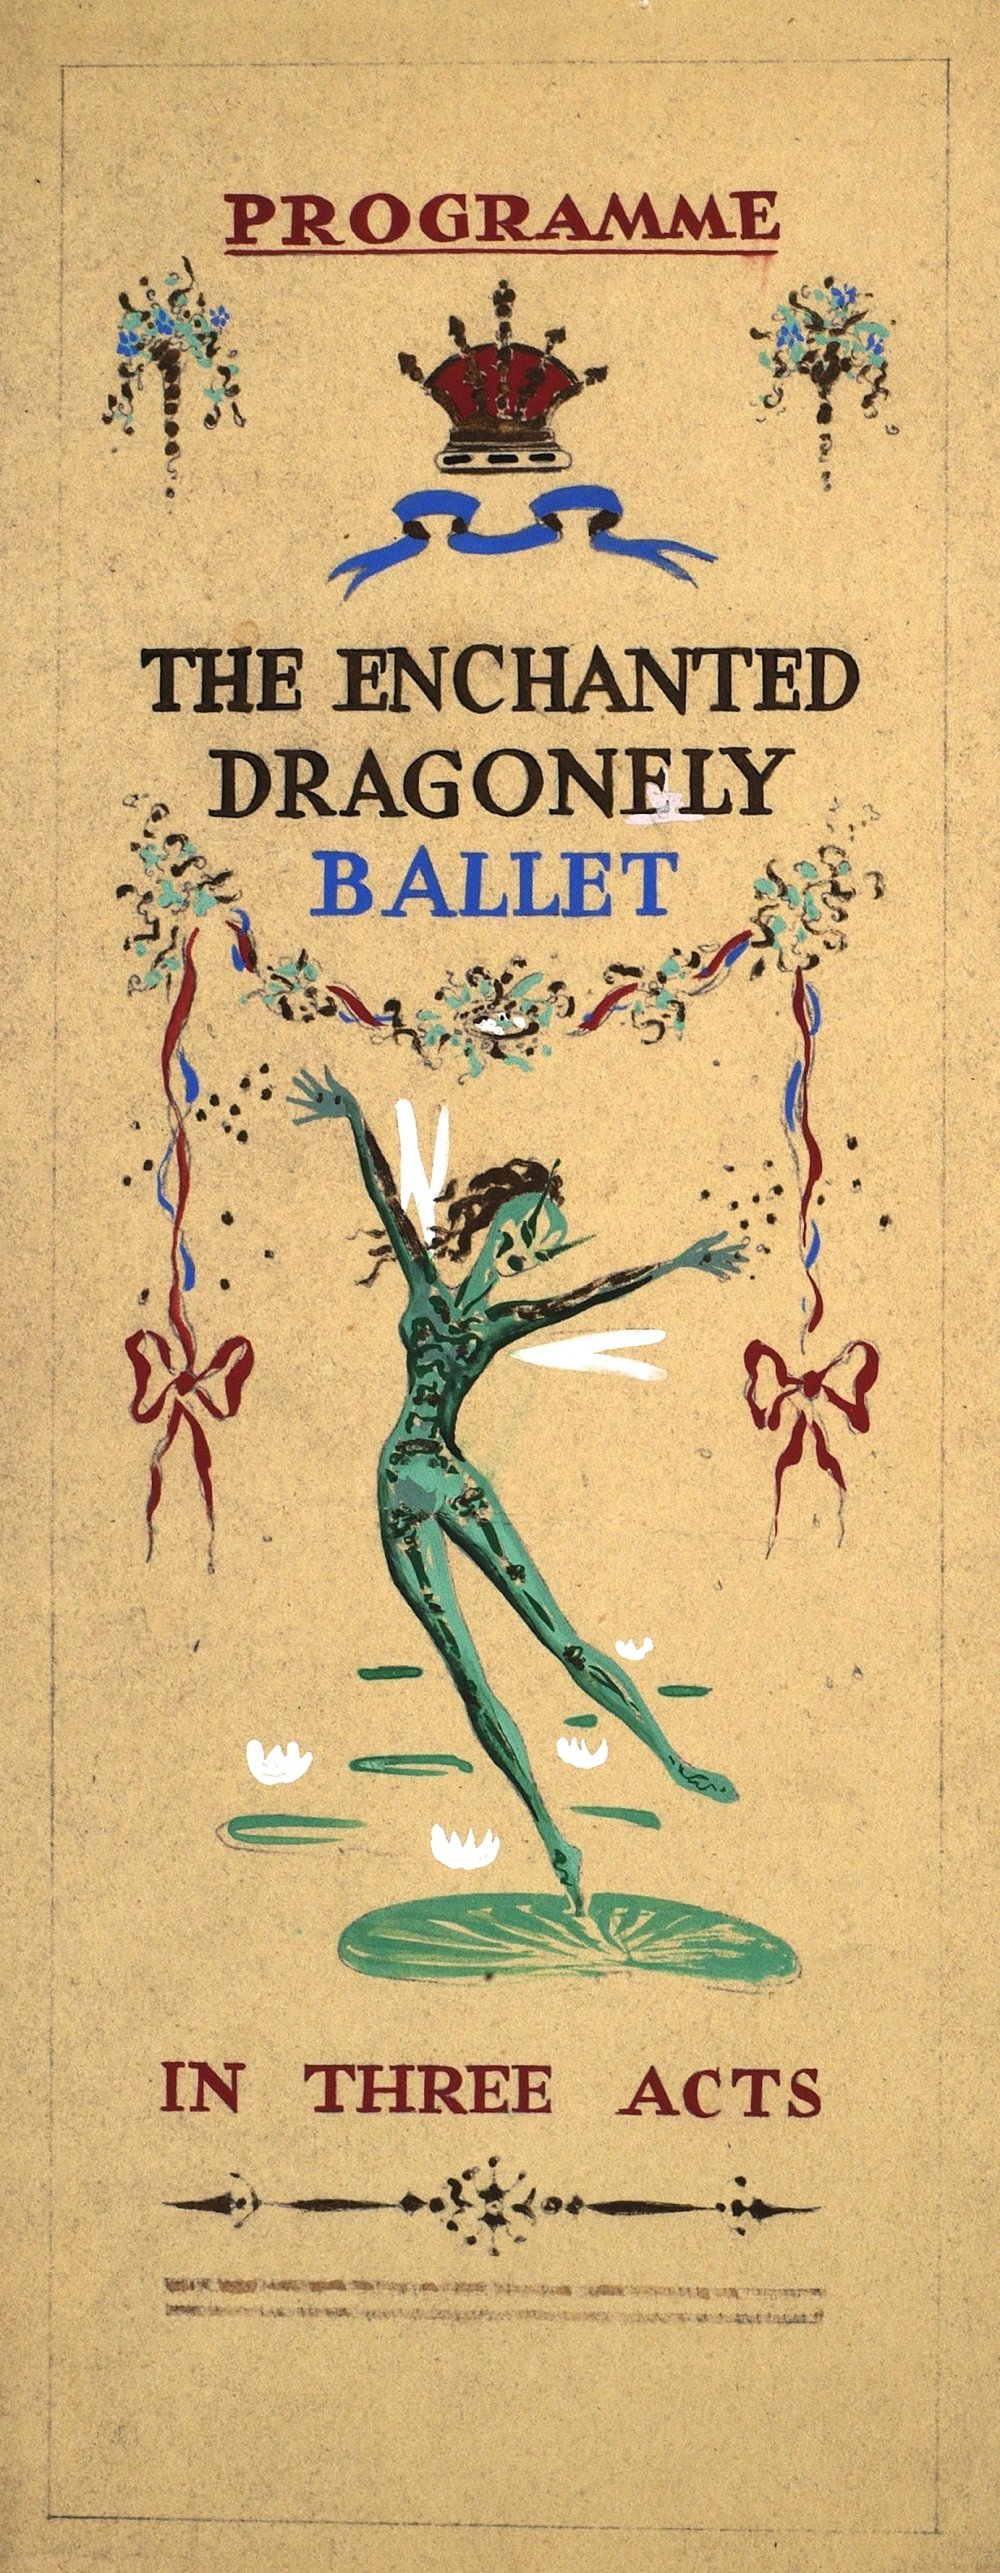 Design for programme for 'The Enchanted Dragonfly Ballet', Ivor Beddoes Collection, BFI Special Collections